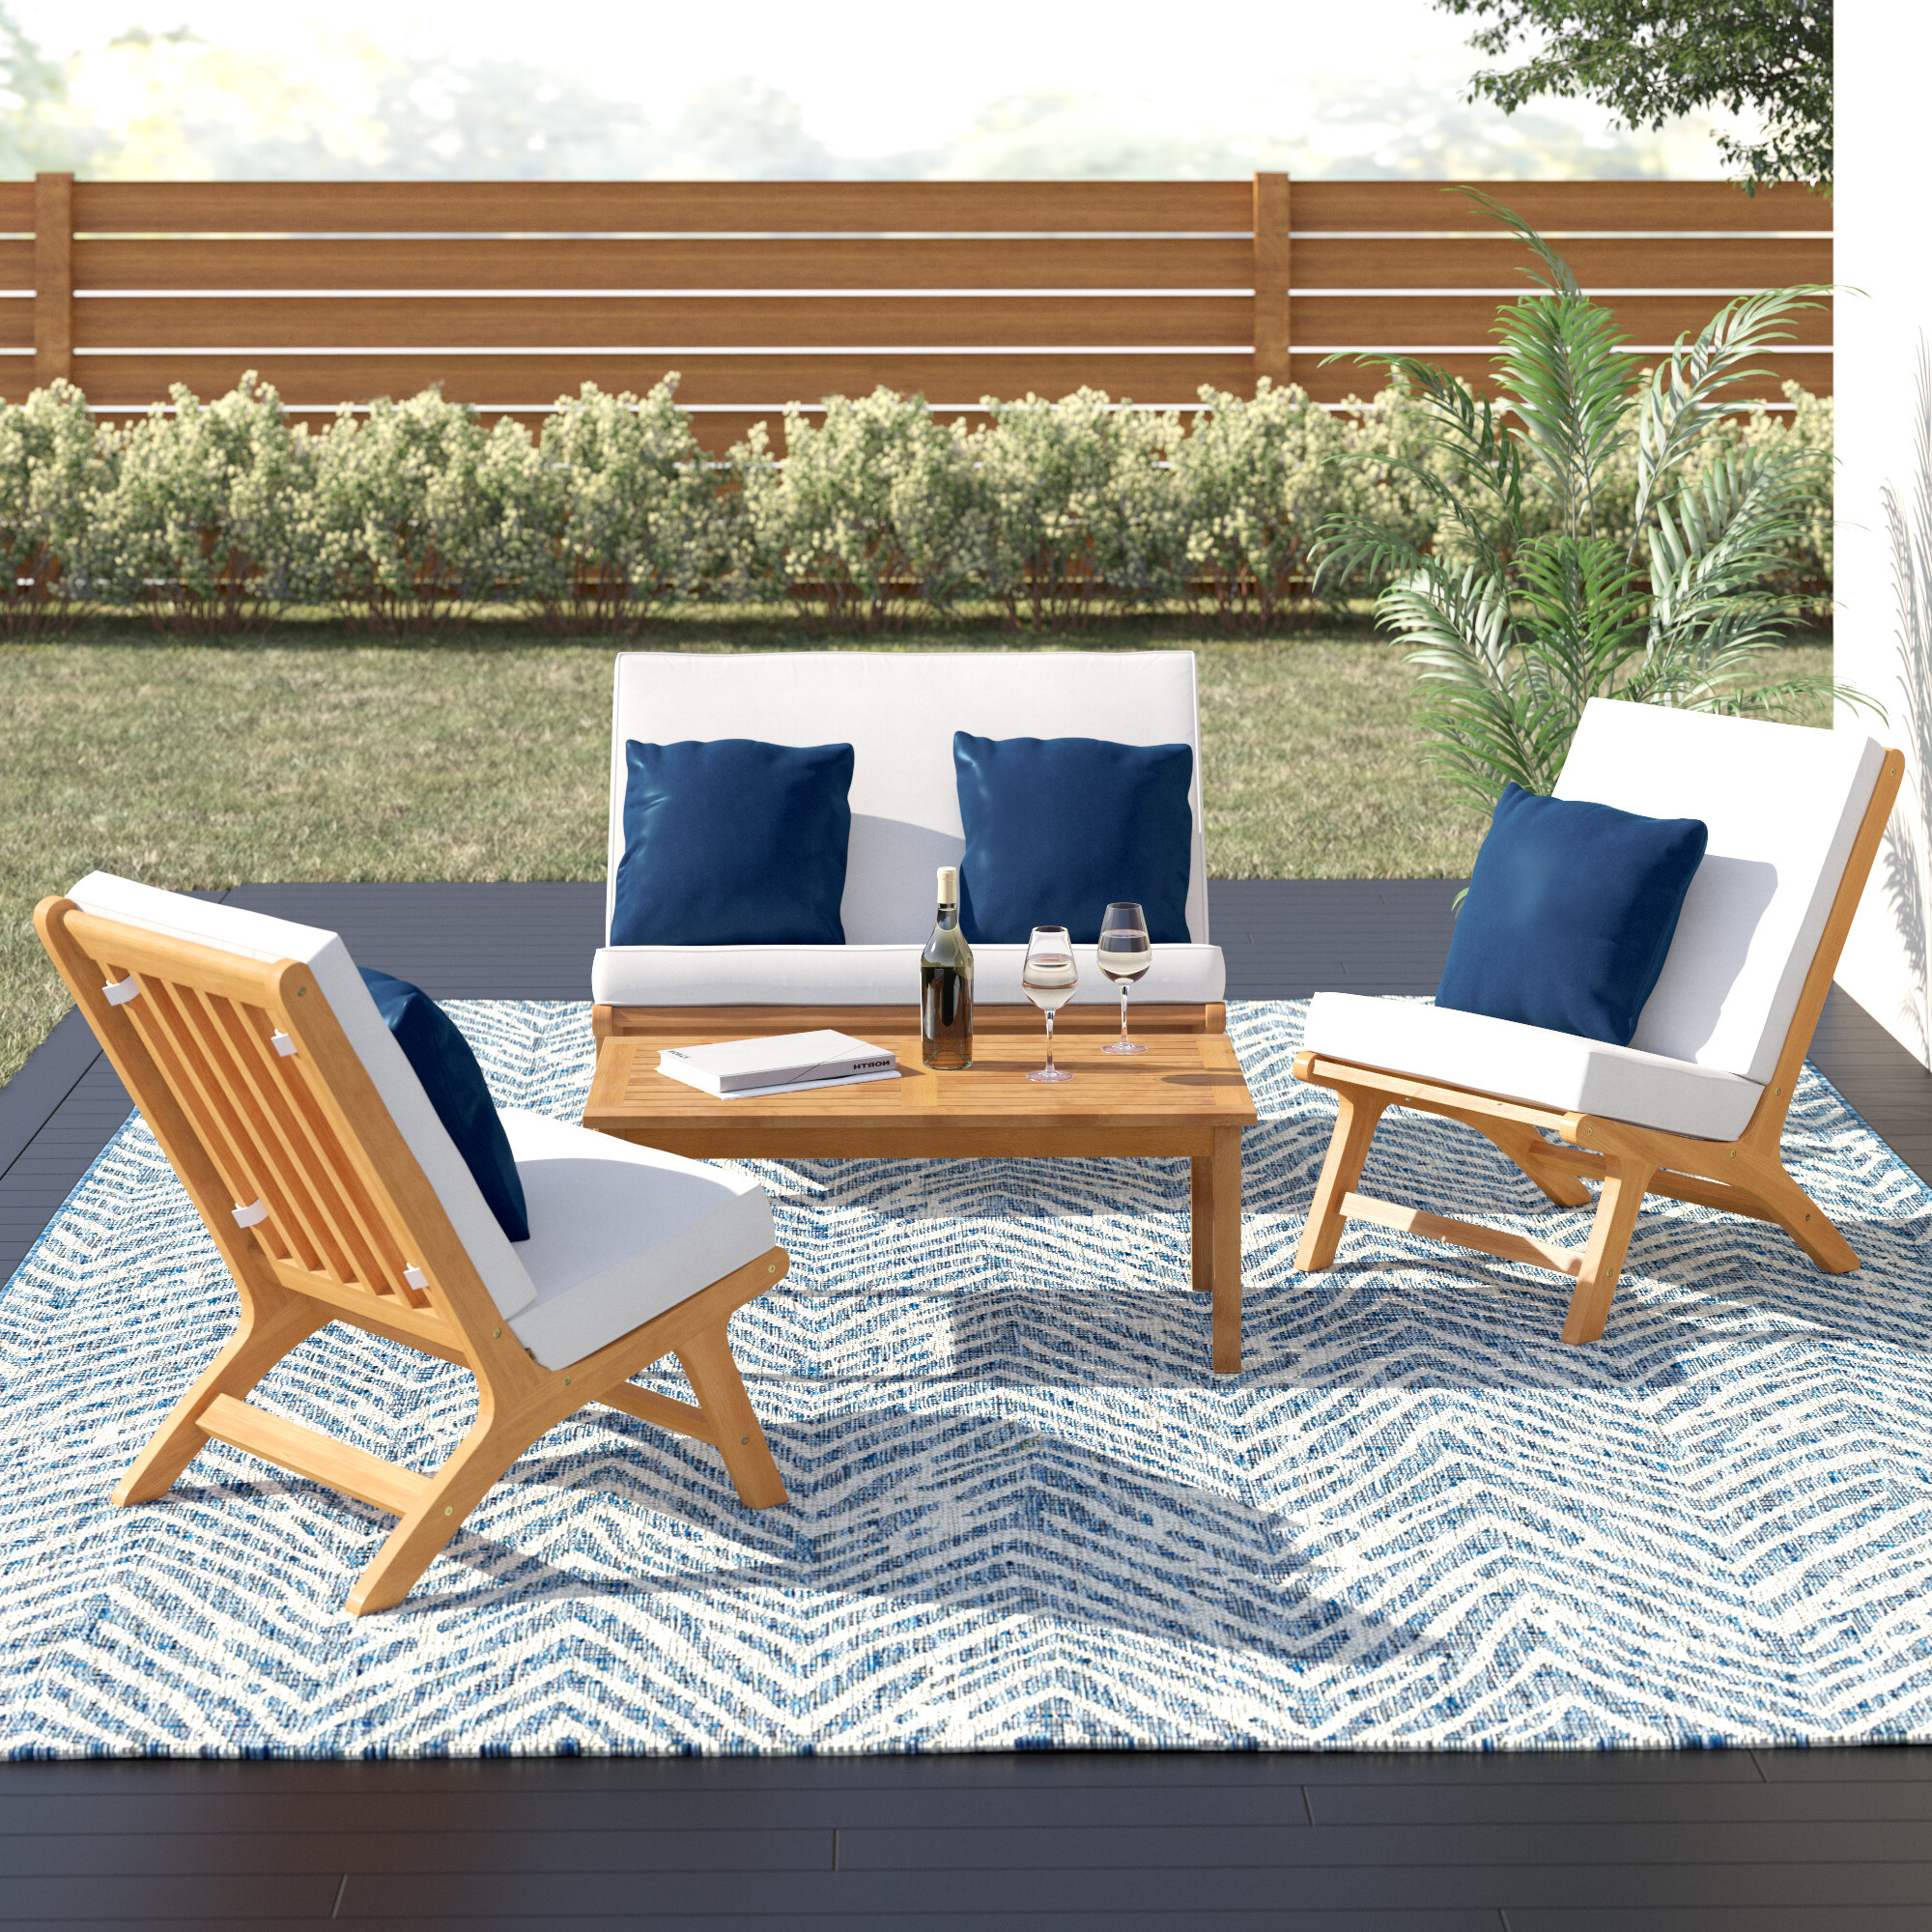 Fashionable Trent Austin Design Cortney 4 Piece Sofa Seating Group With Cushions With Regard To Olinda 4 Piece Teak Sectionals Seating Group With Cushions (View 17 of 25)